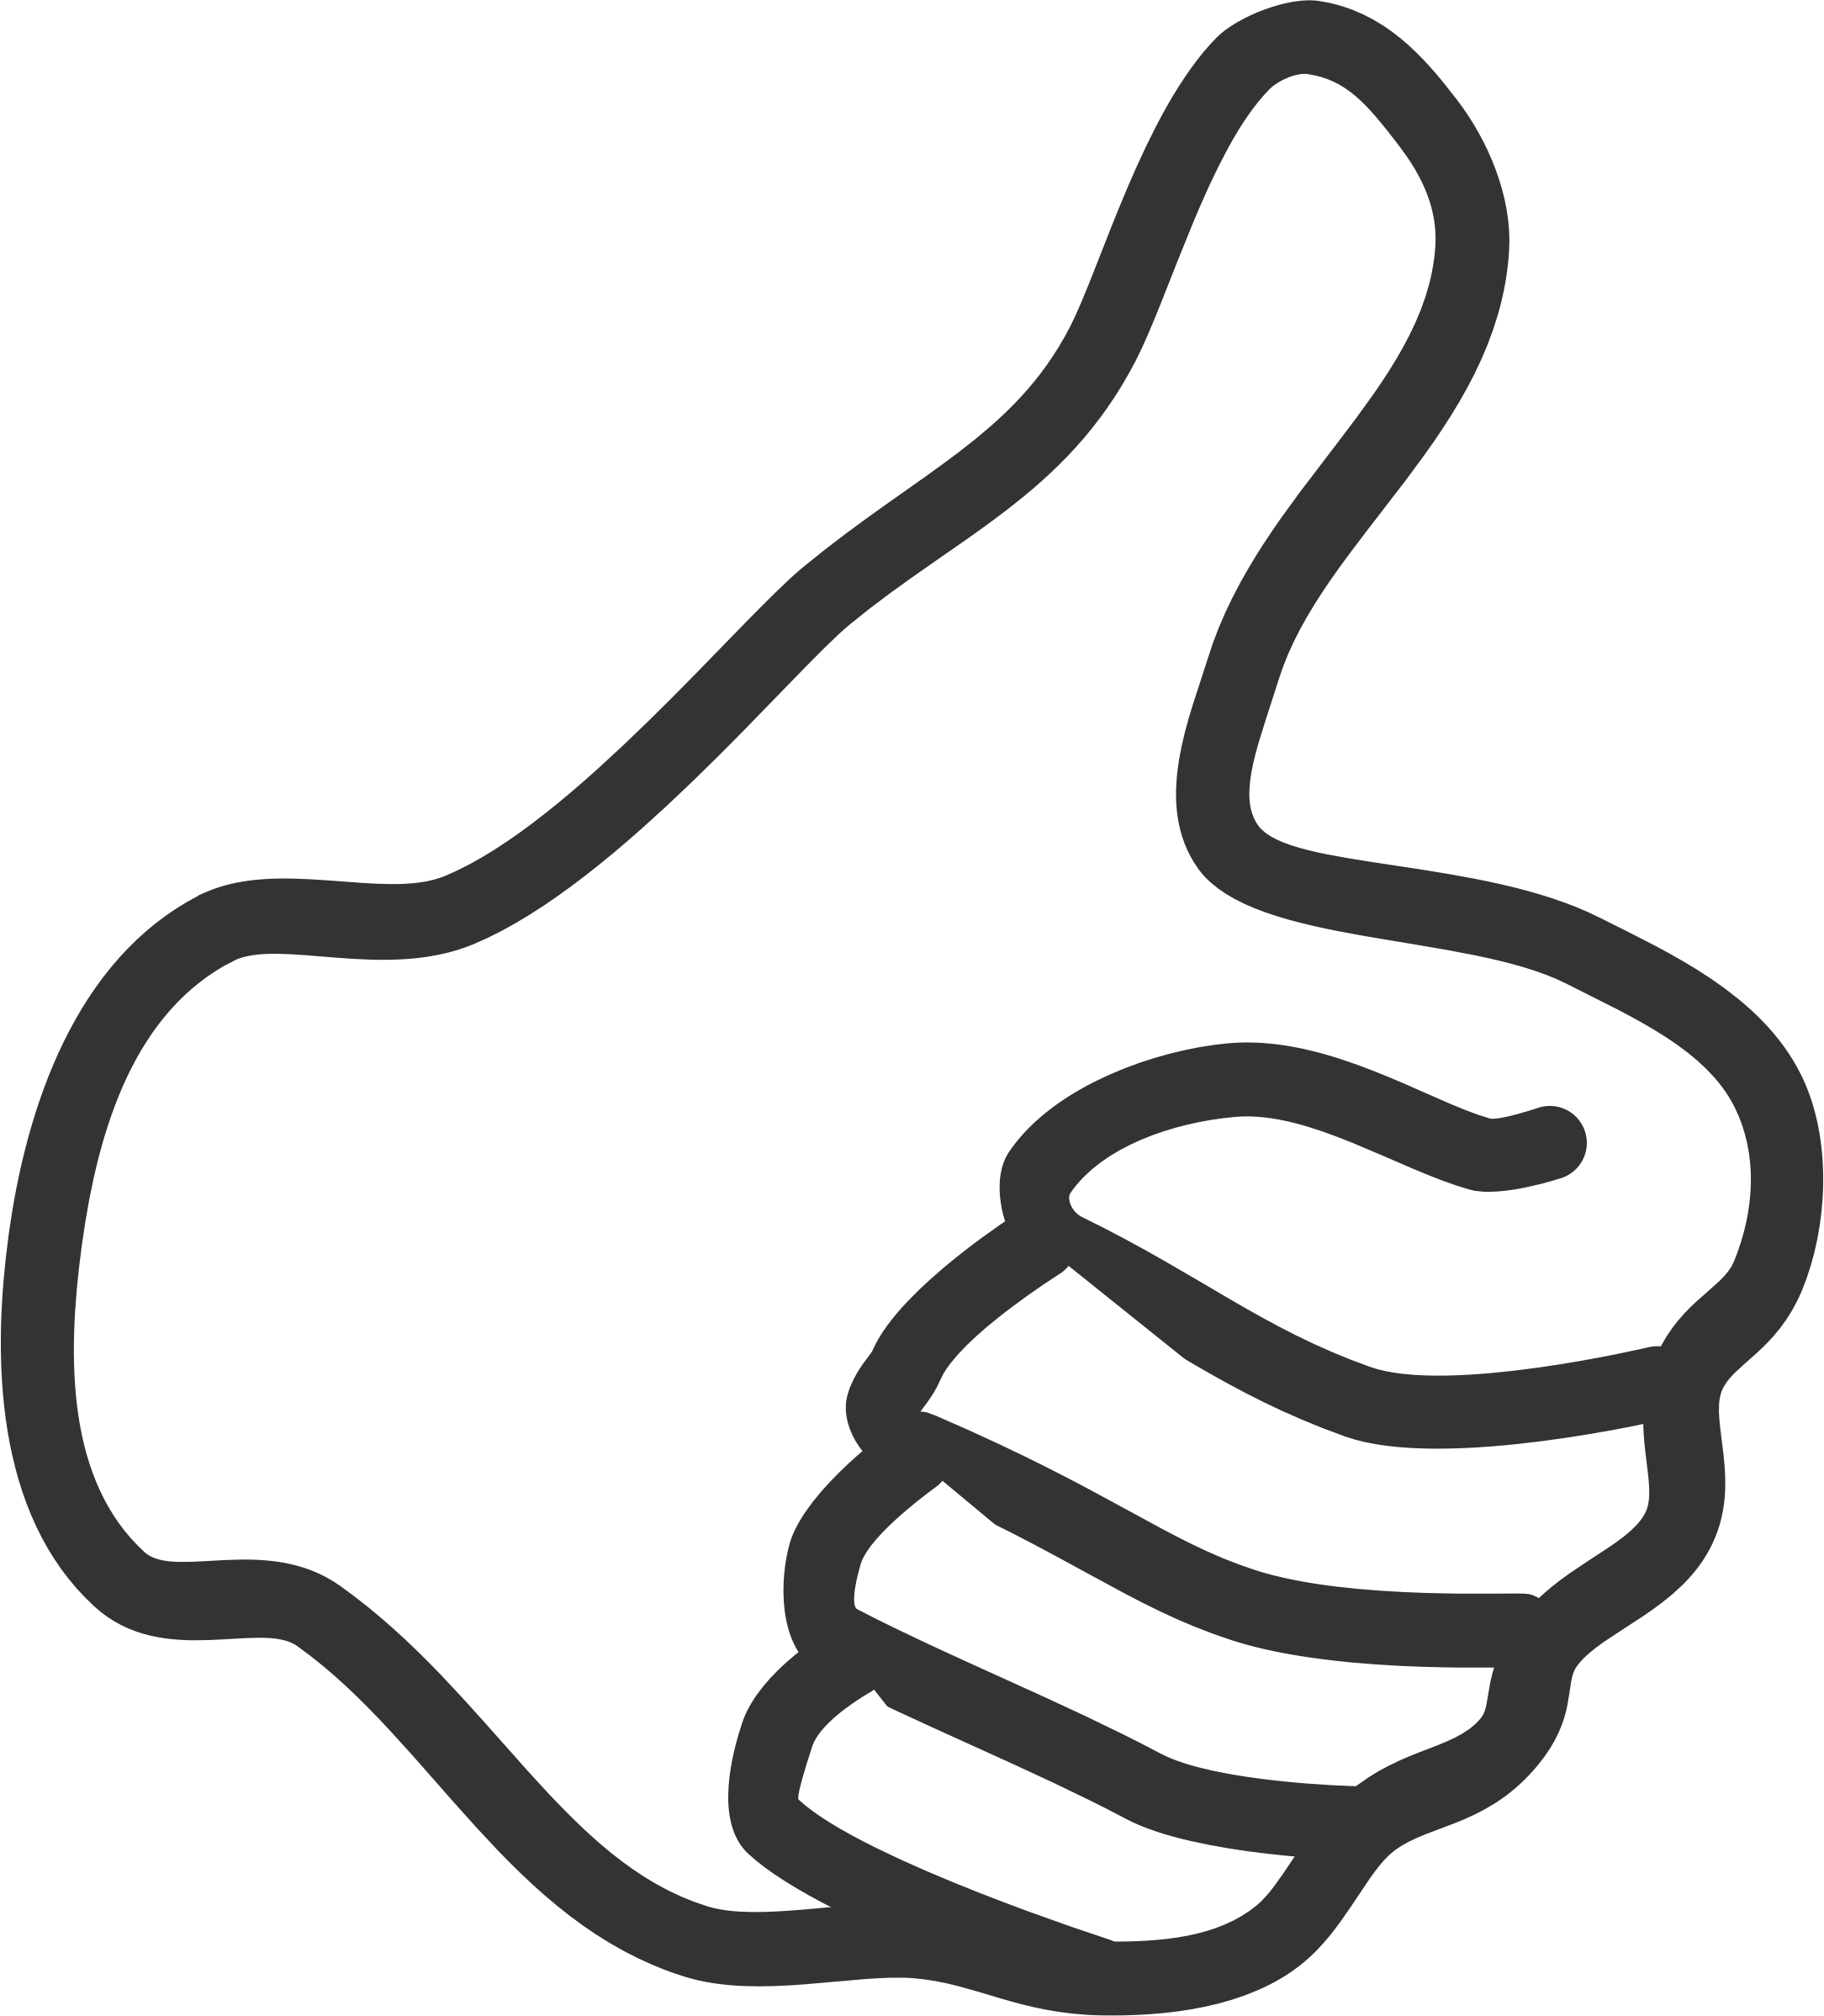 Thumbs clipart png freeuse download Thumbs up up clipart - WikiClipArt png freeuse download